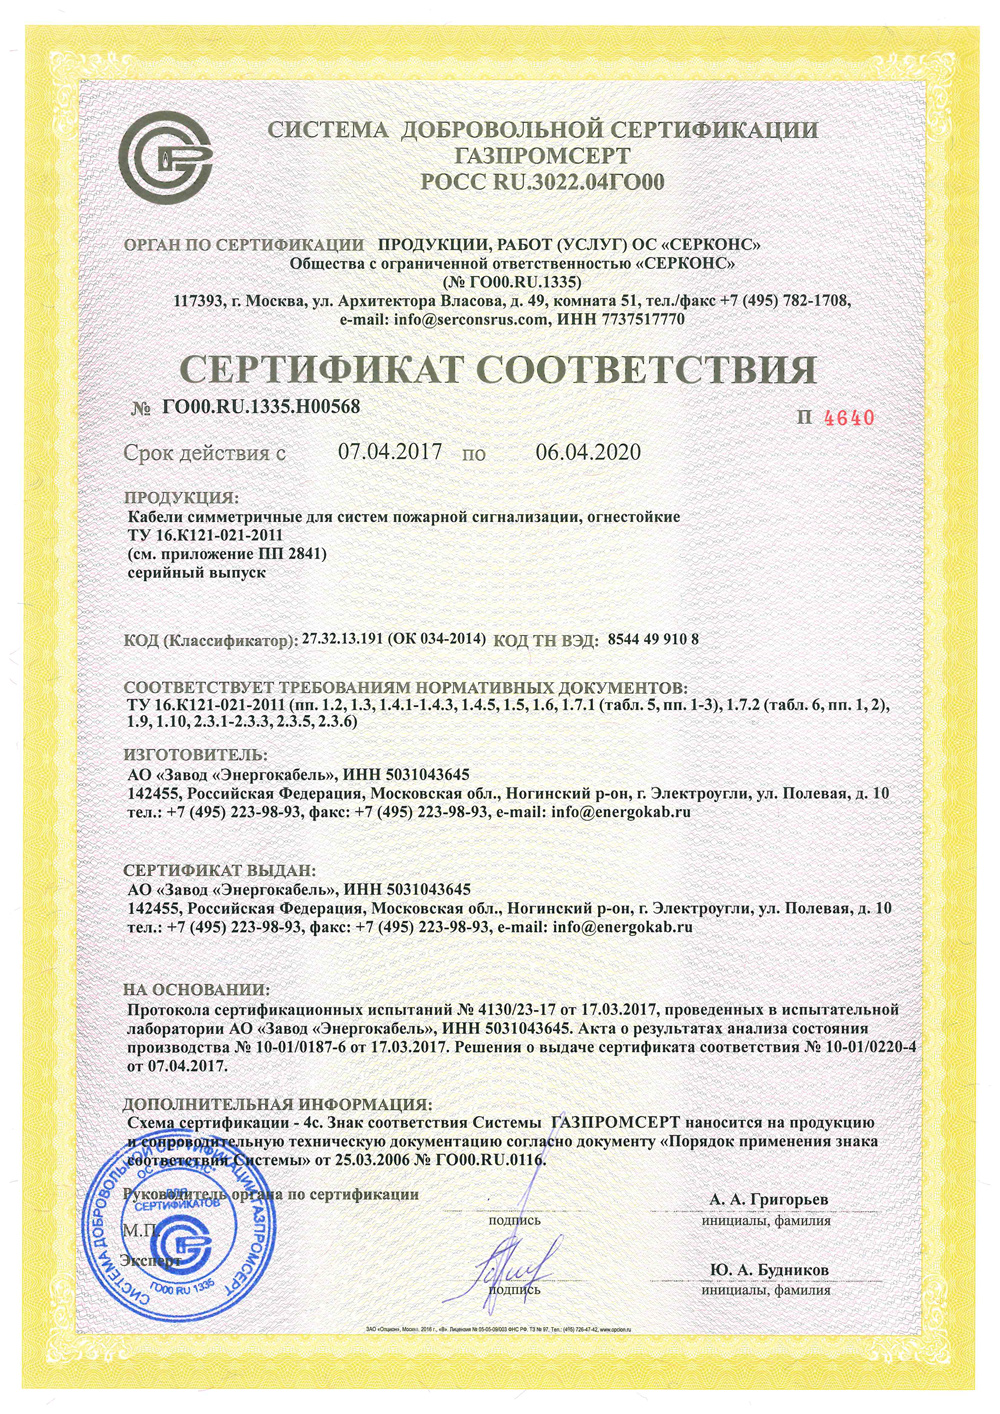 Certificate of Conformity No. ГО00.RU.1335.Н00568. Symmetrical cables for fire alarm systems, fire resistant, Specifications 16.K121-021-2011.